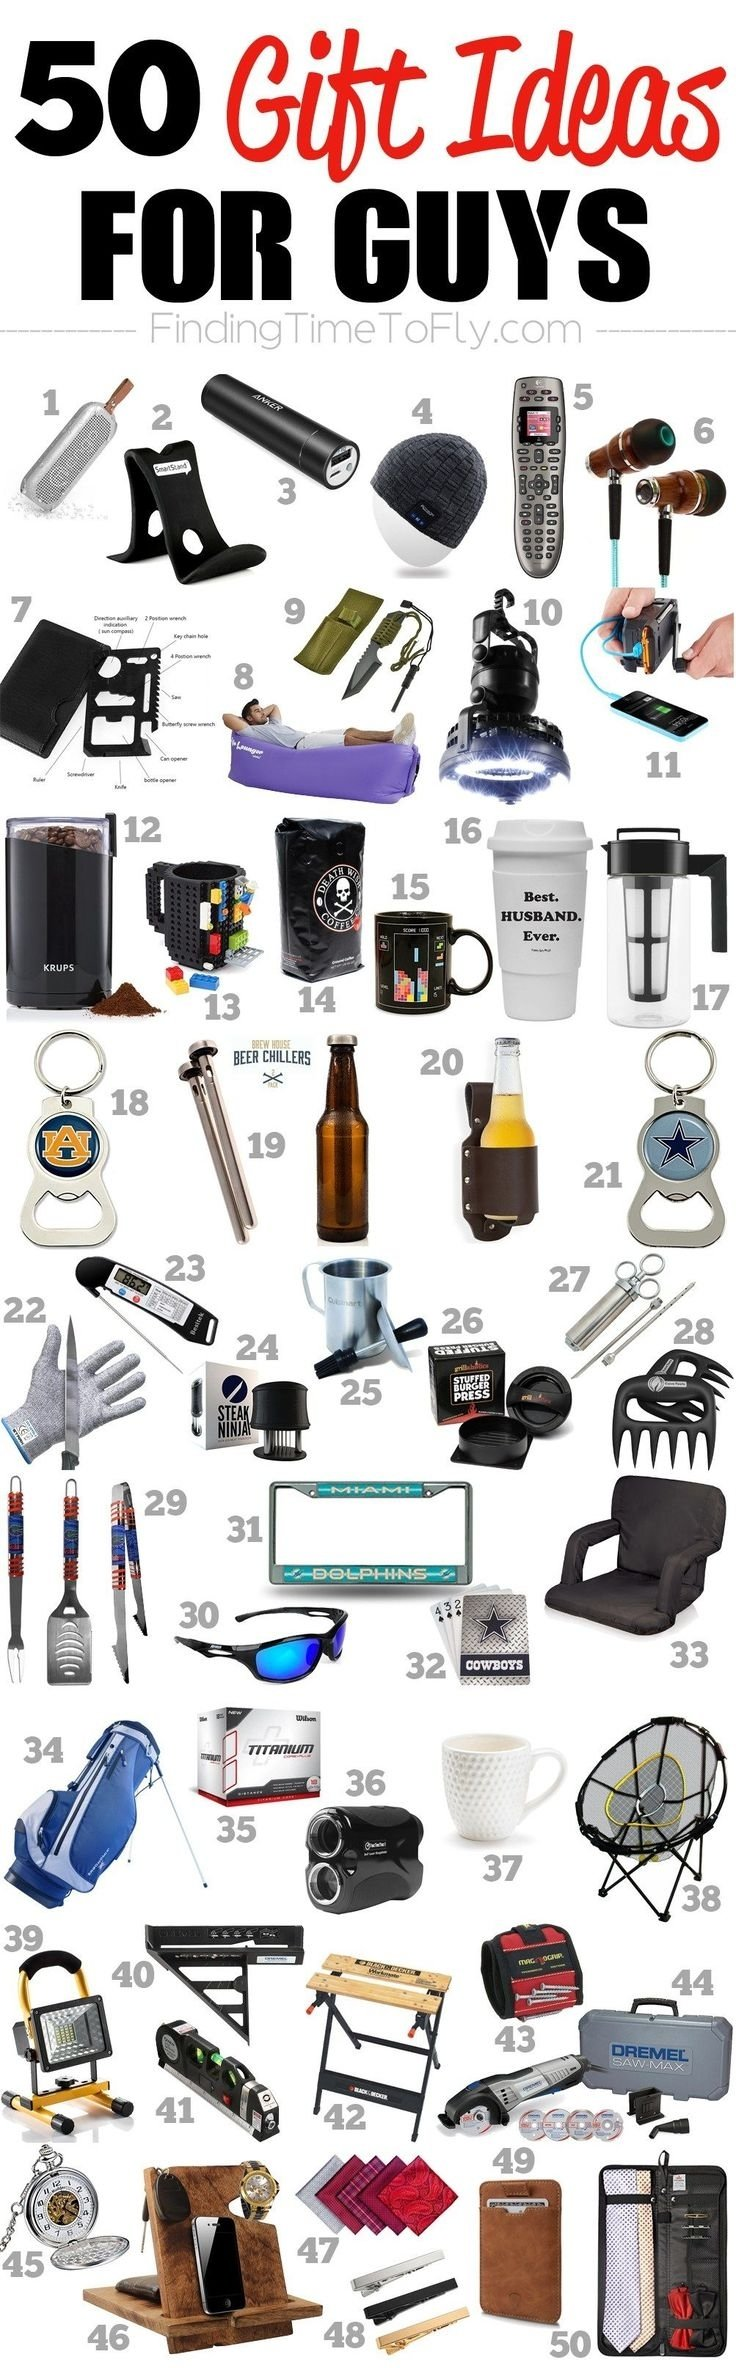 10 Trendy Unique Gift Ideas For Men Who Have Everything 178 Best Gifts Him Images